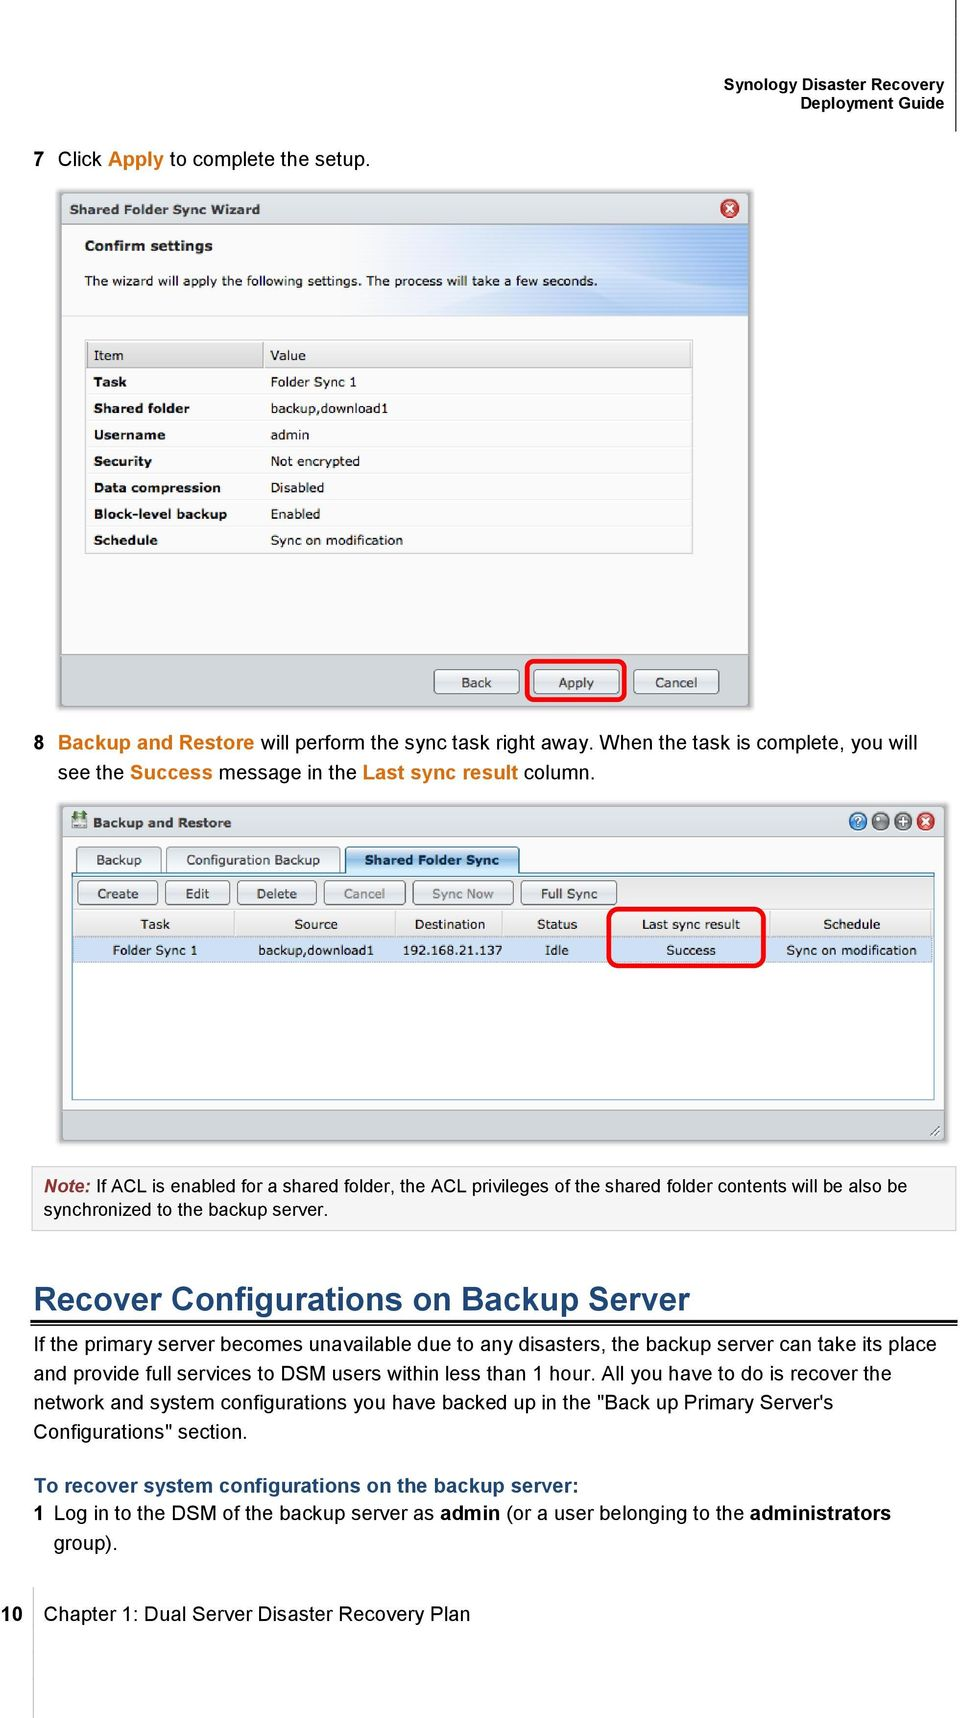 Recover Configurations on Backup Server If the primary server becomes unavailable due to any disasters, the backup server can take its place and provide full services to DSM users within less than 1